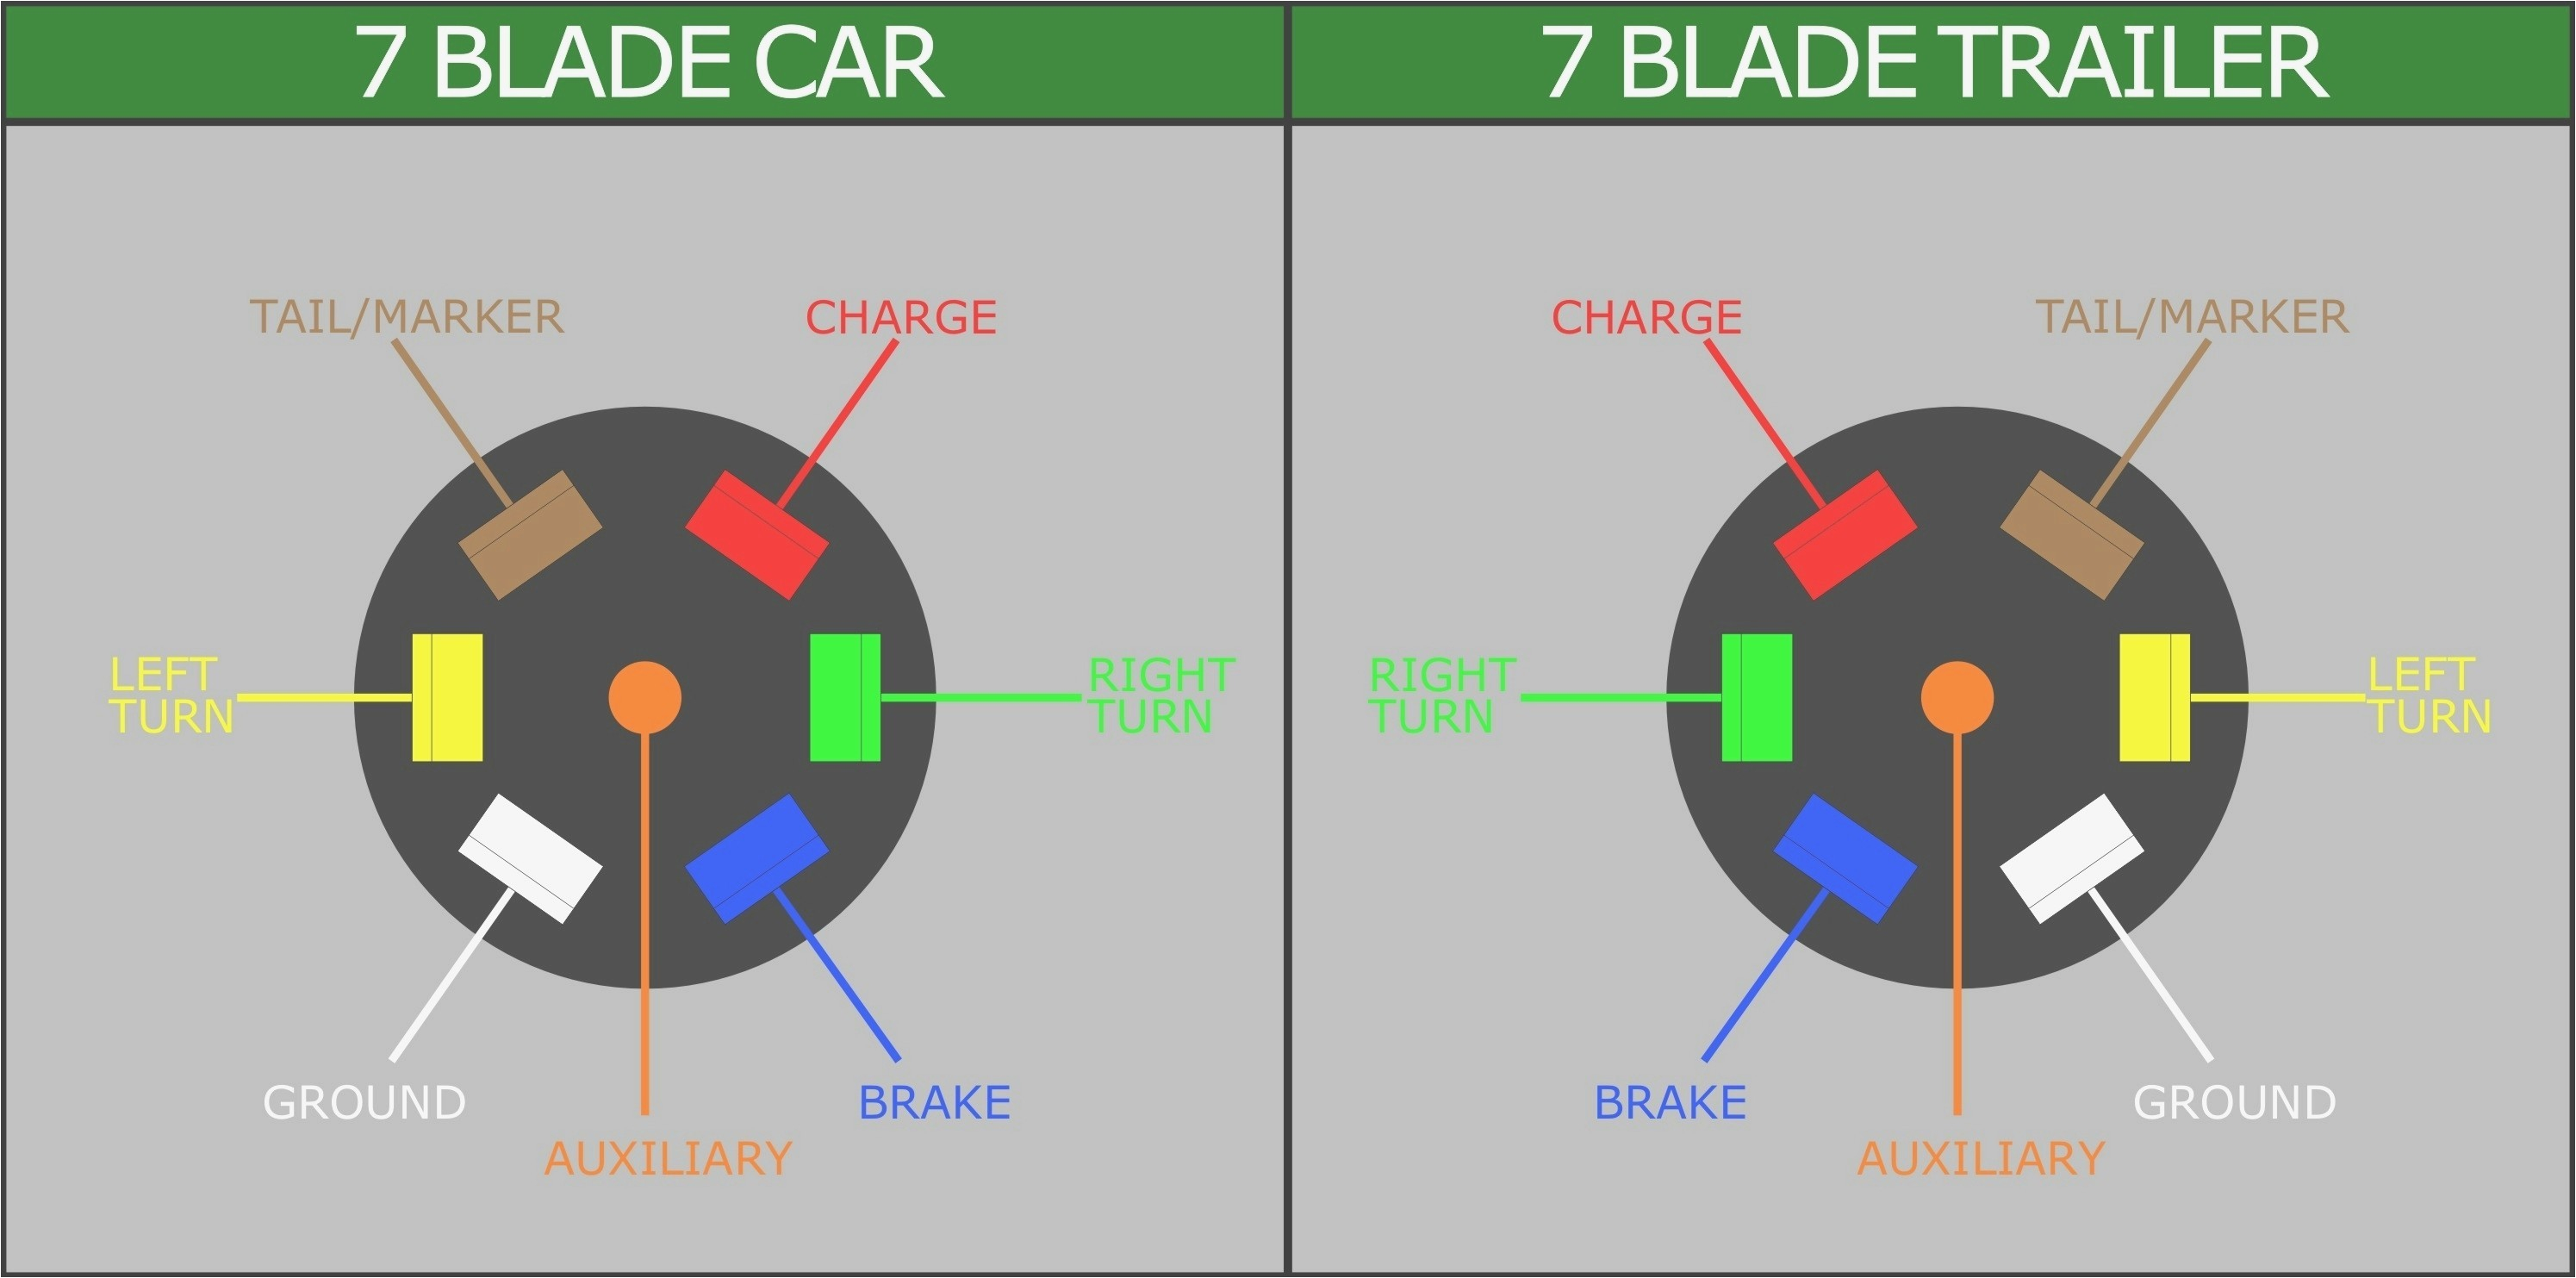 wiring diagram pin plug rv trailer to way blade for harness of dodge ram travel side jpg